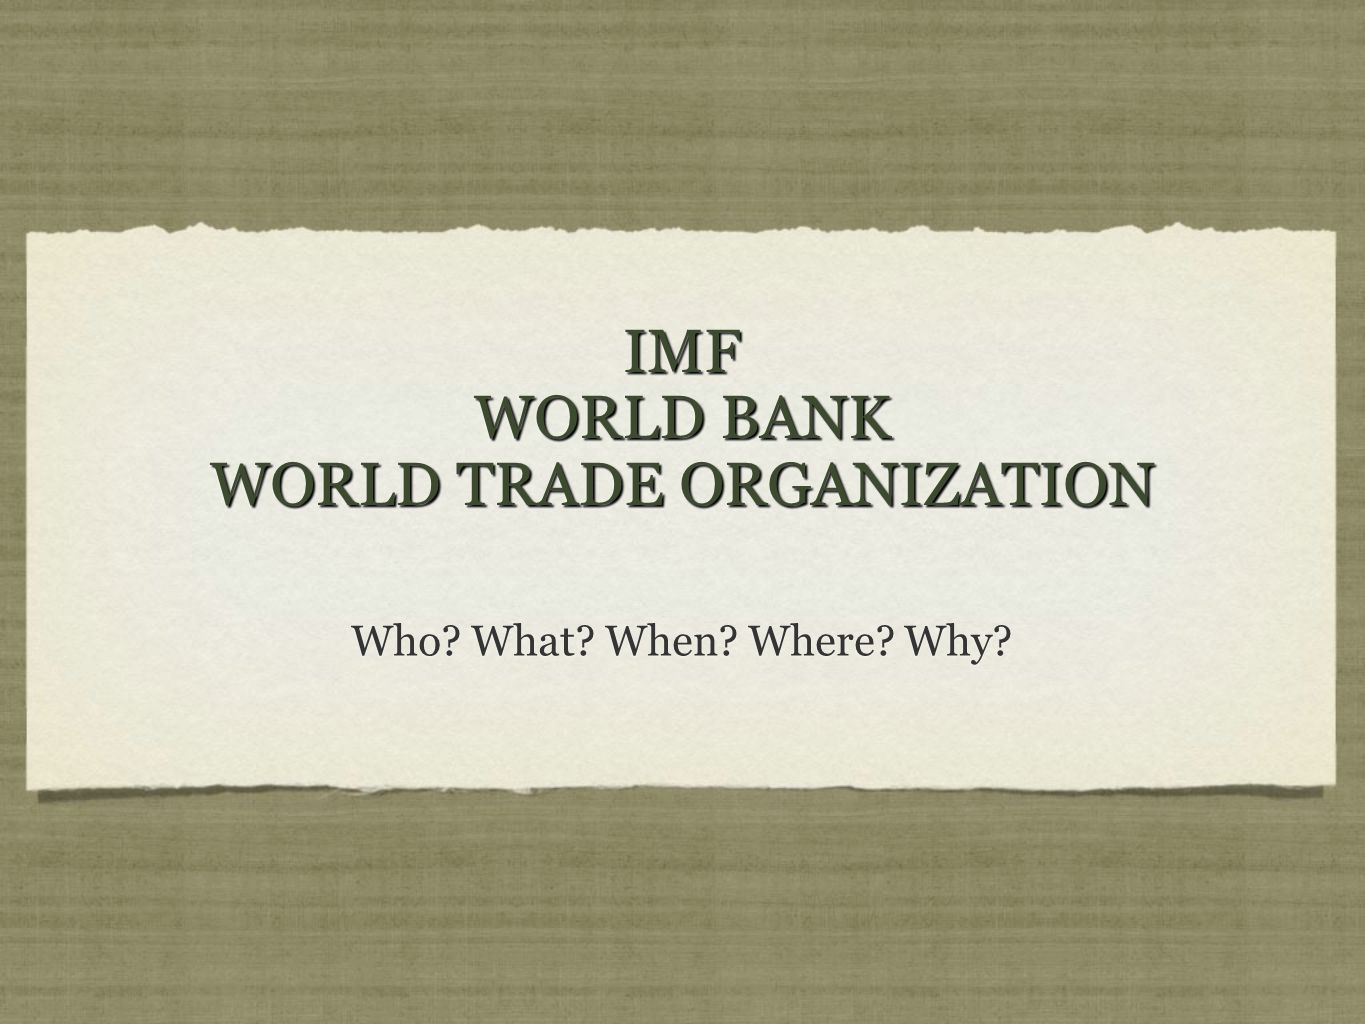 IMF WORLD BANK WORLD TRADE ORGANIZATION